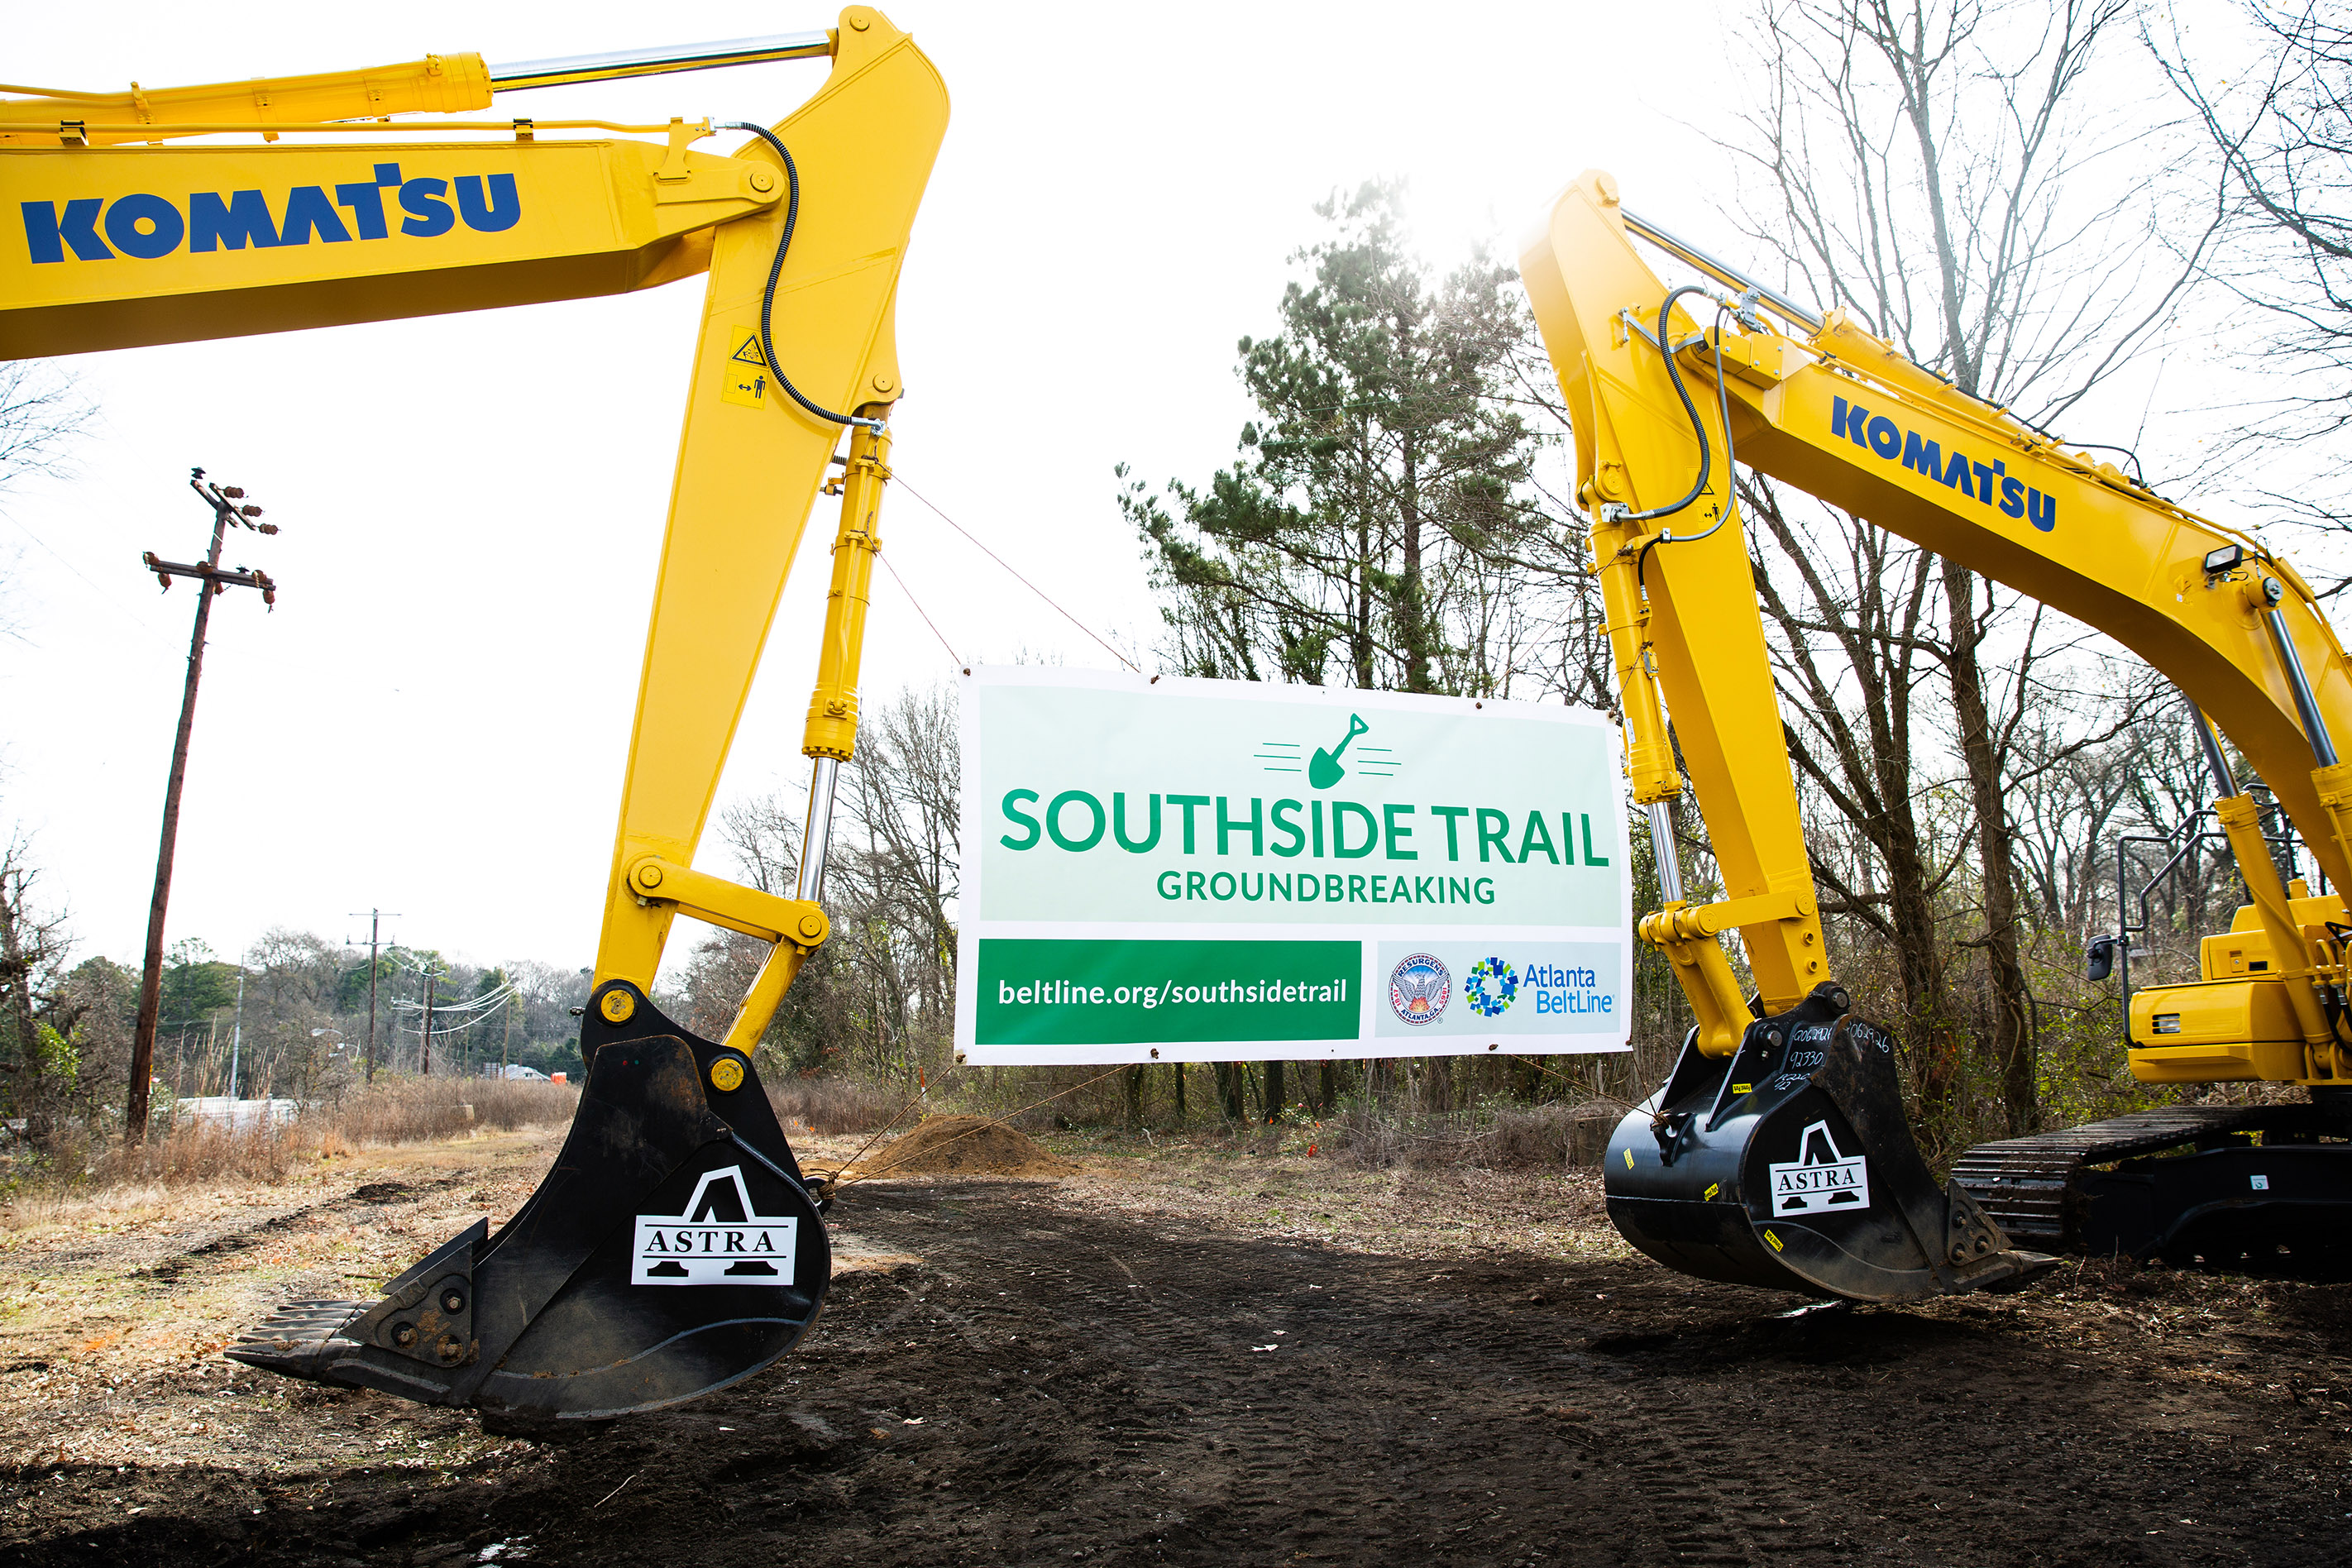 """Two backhoes support a sign that reads """"Southside Trail Groundbreaking."""""""